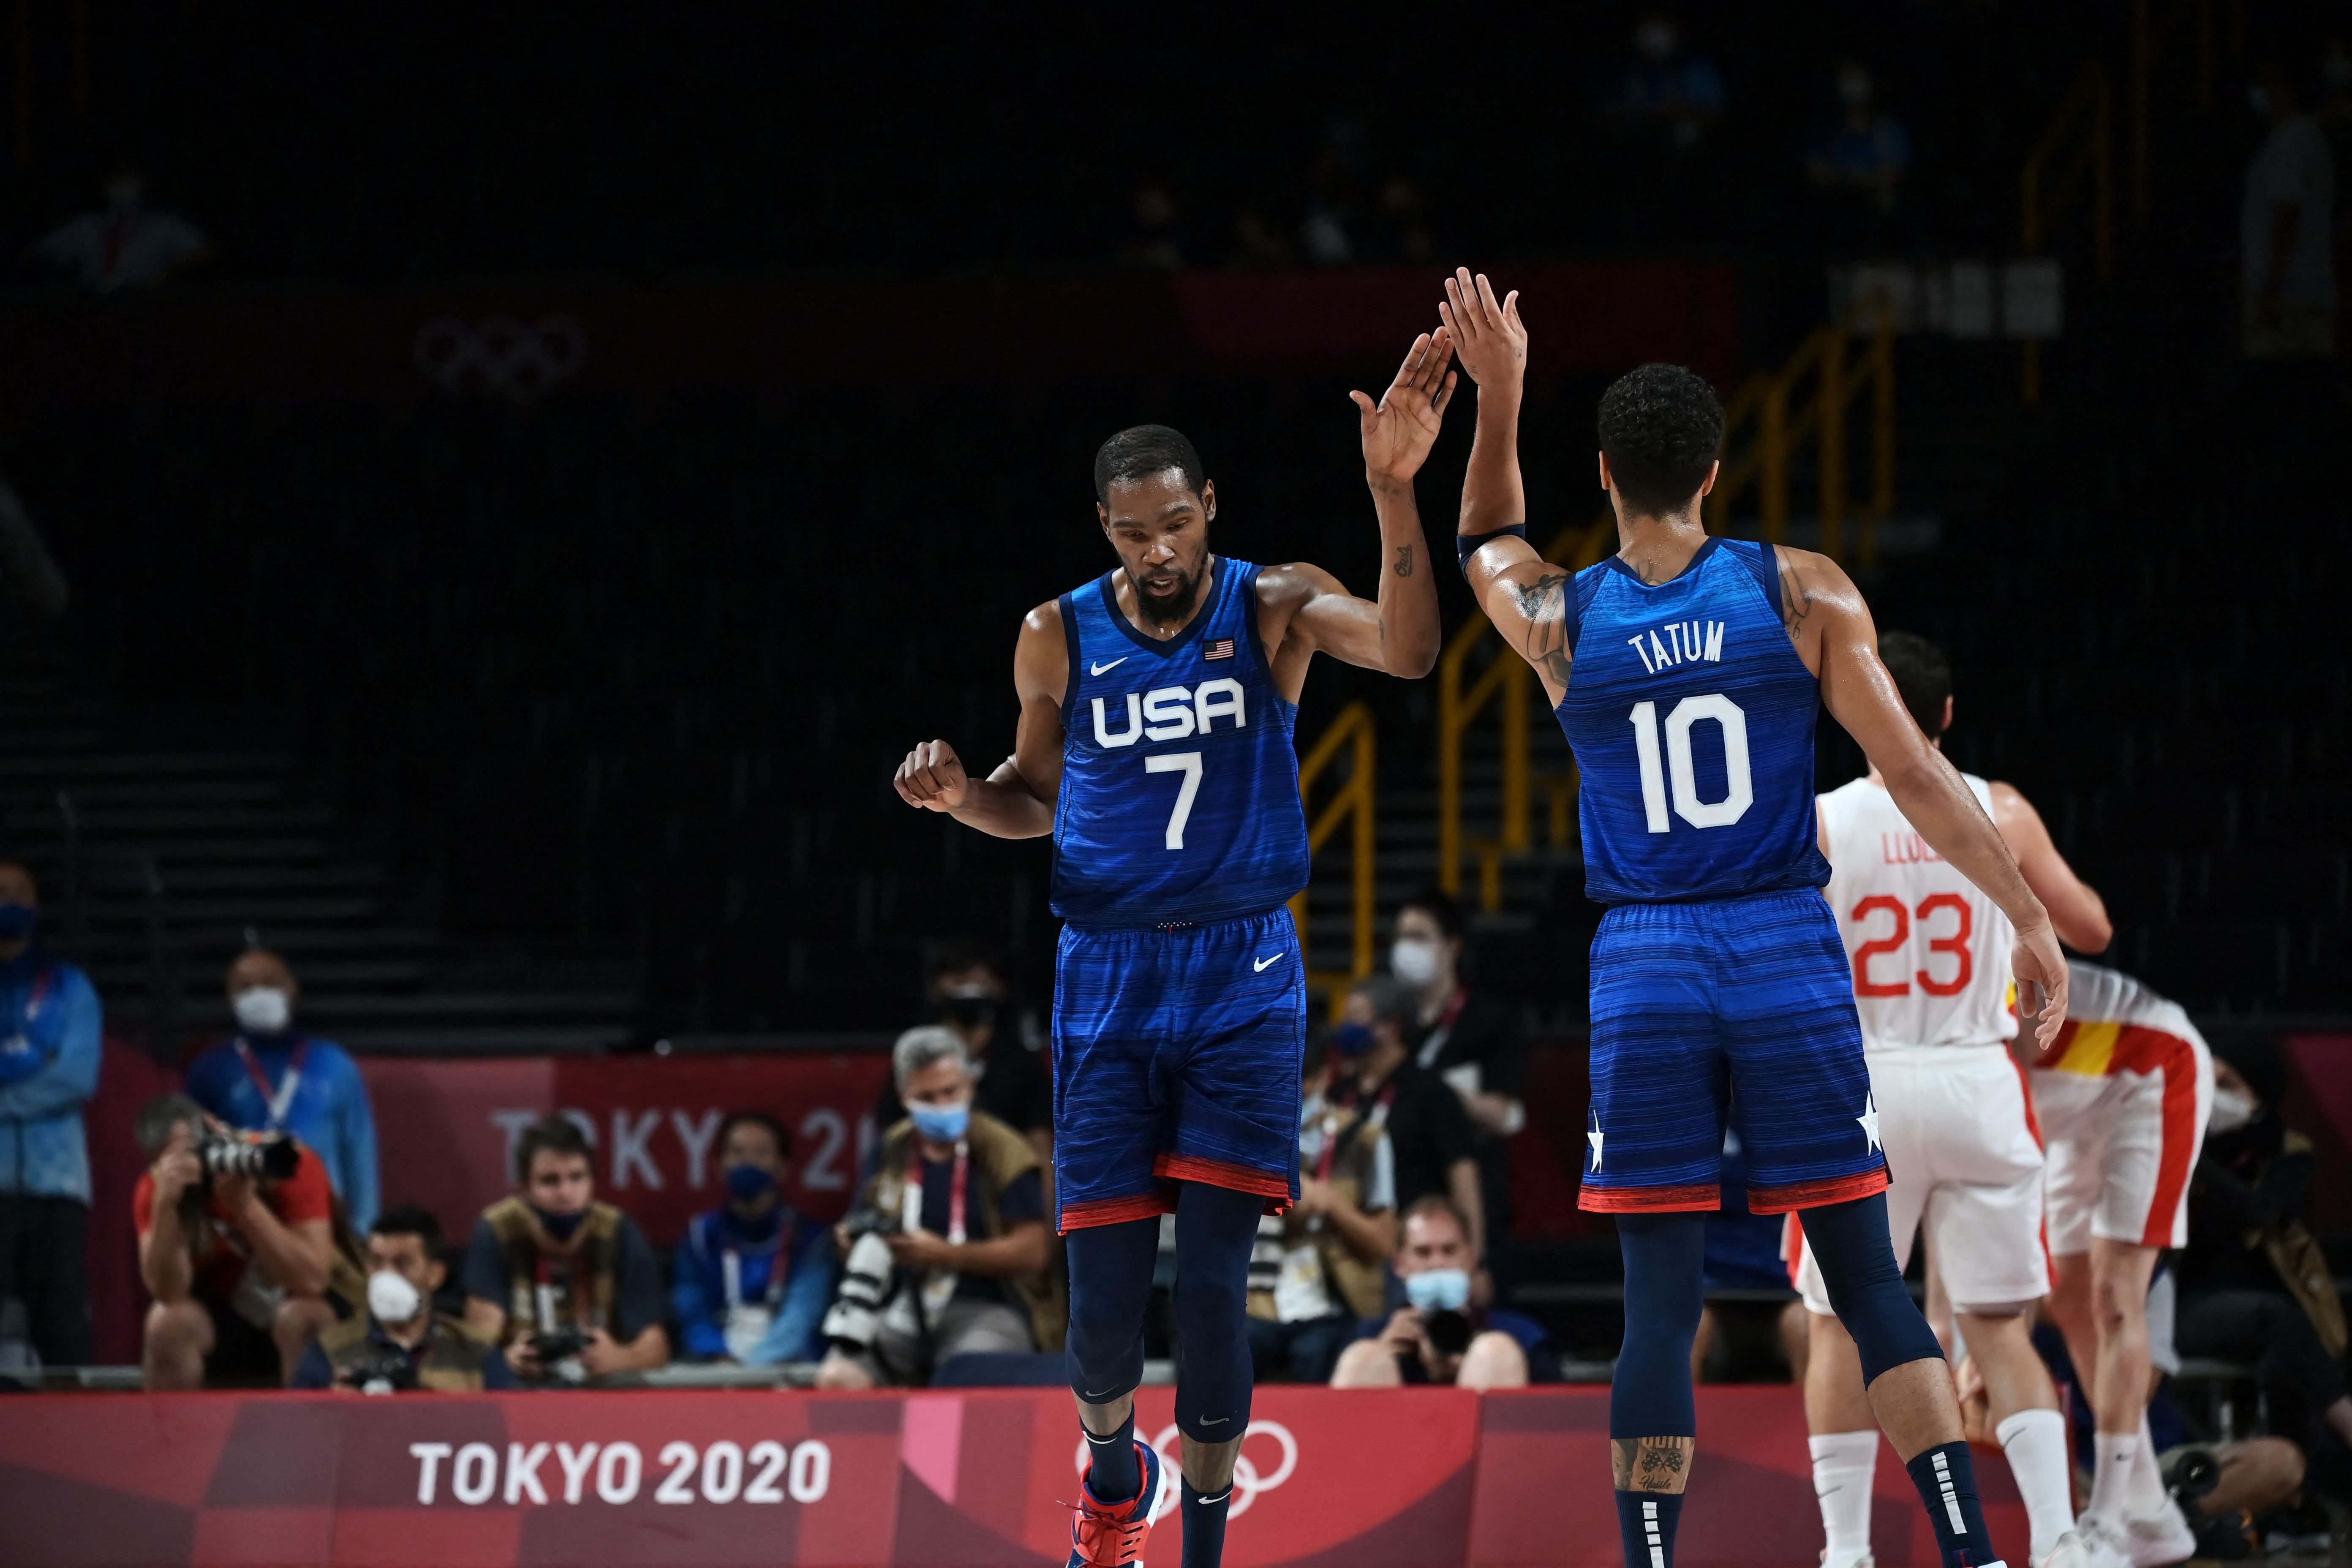 U.S. men overcome slow start, beat Spain to advance to basketball semifinals